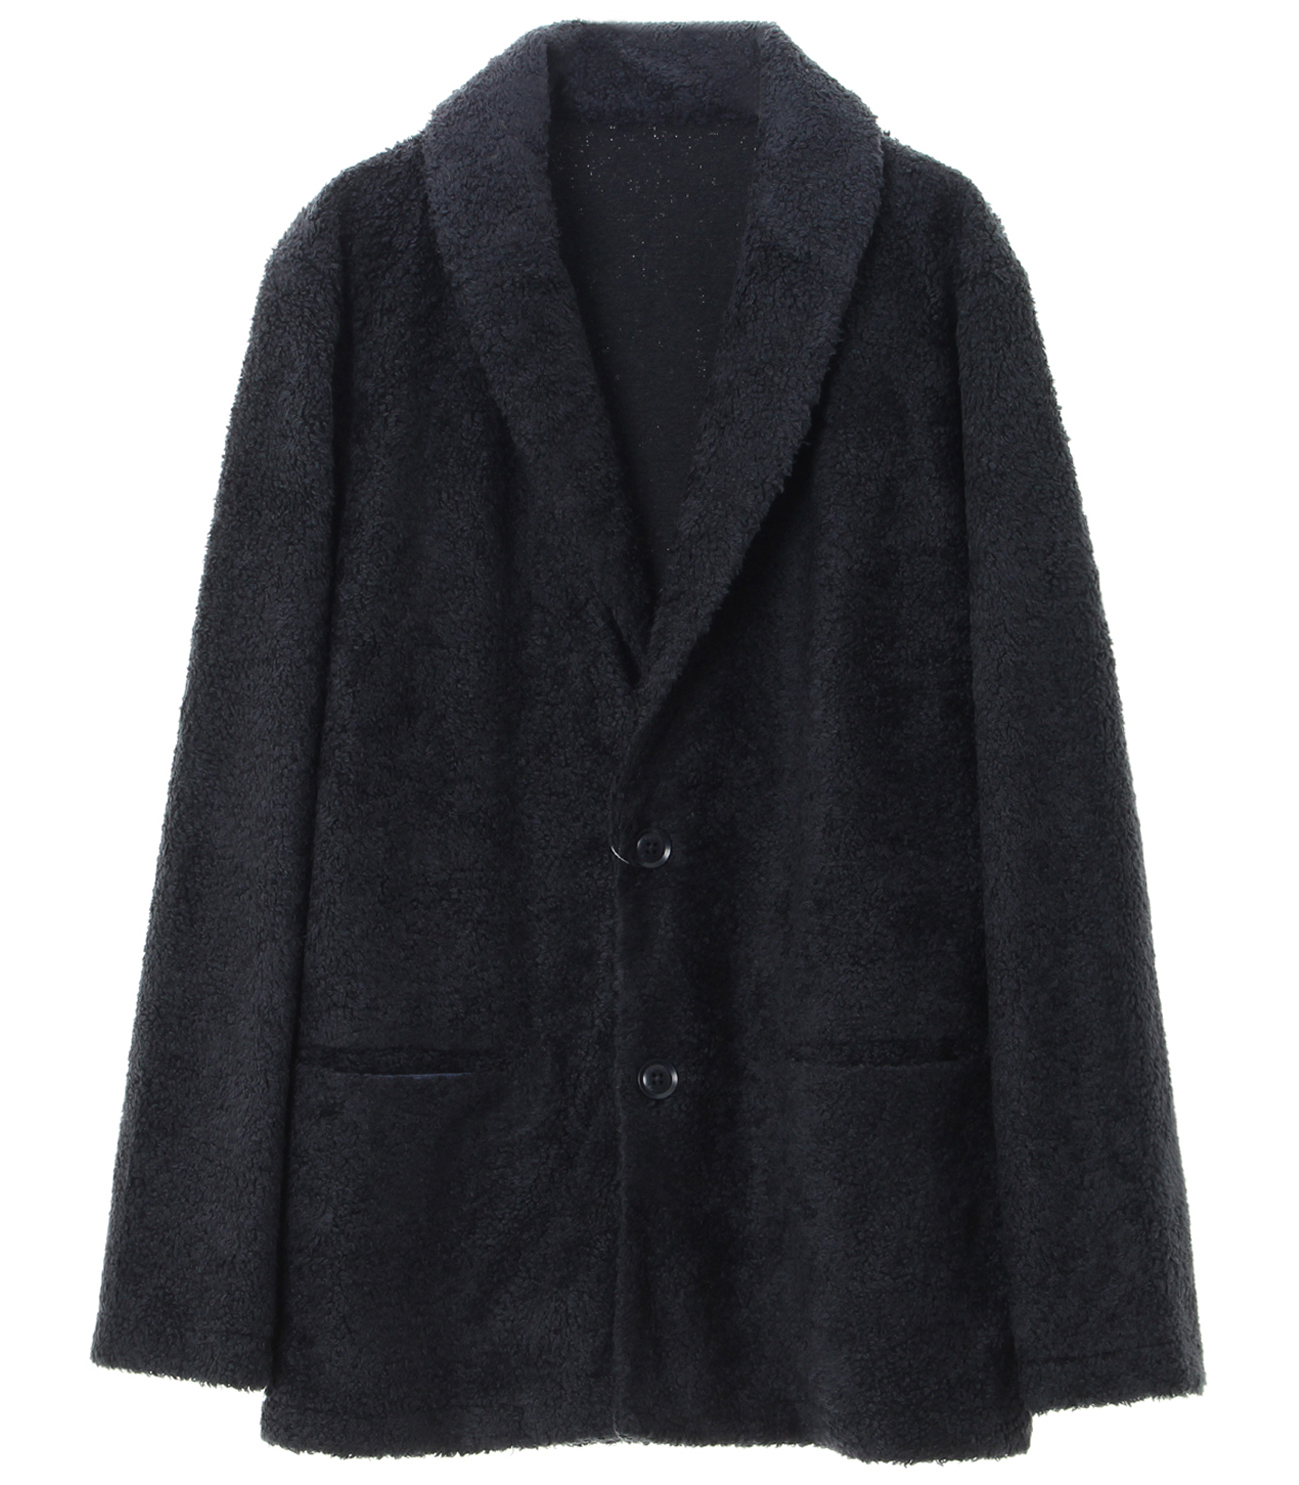 men's light boa shawl collar cardigan 詳細画像 black 1